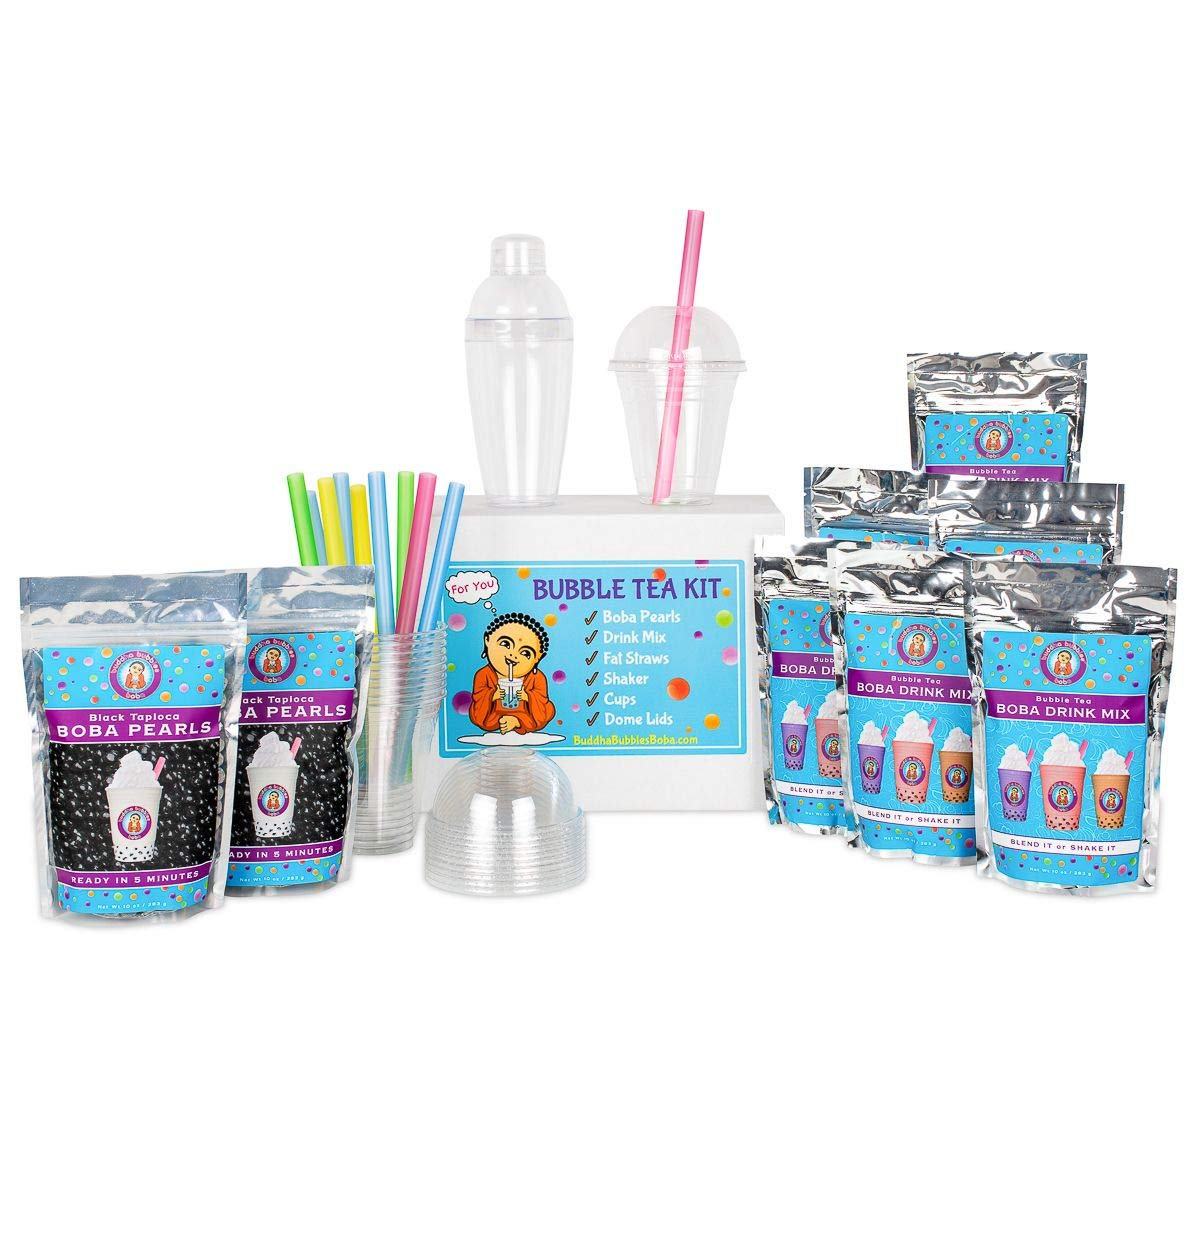 The ULTIMATE DIY Boba / Bubble Tea Kit, 60+ Drinks, 6 Flavors, Boba Pearls, Cups, Straws and Shaker (FRUITY)